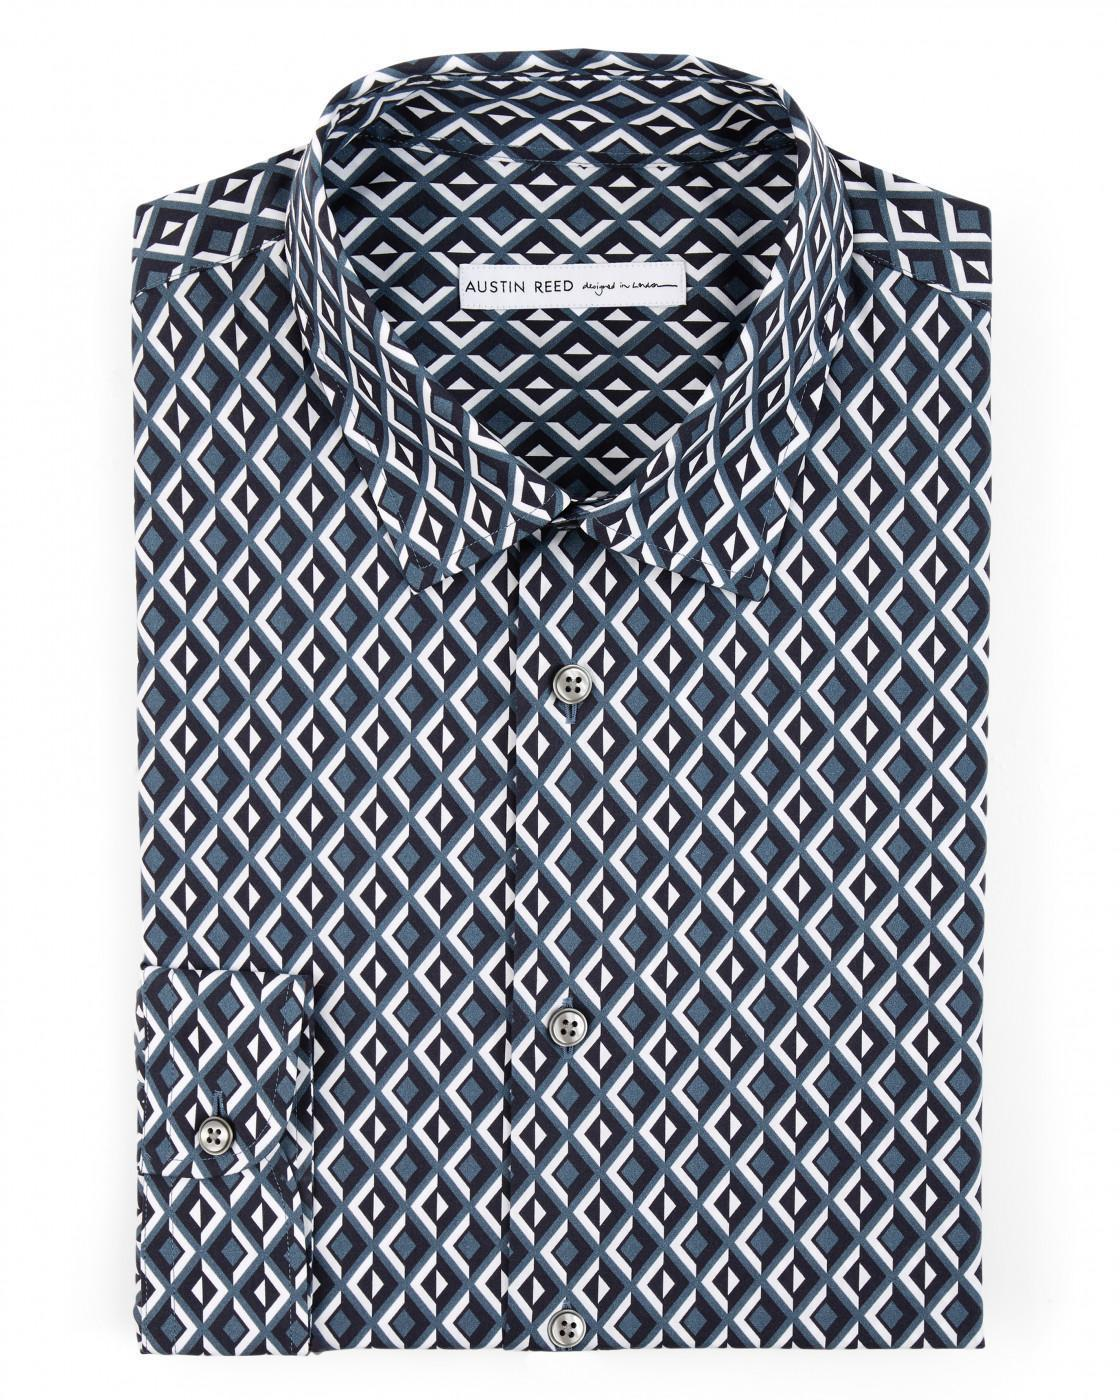 Tailored Stretch Poplin Shirt By Austin Reed Thread Com